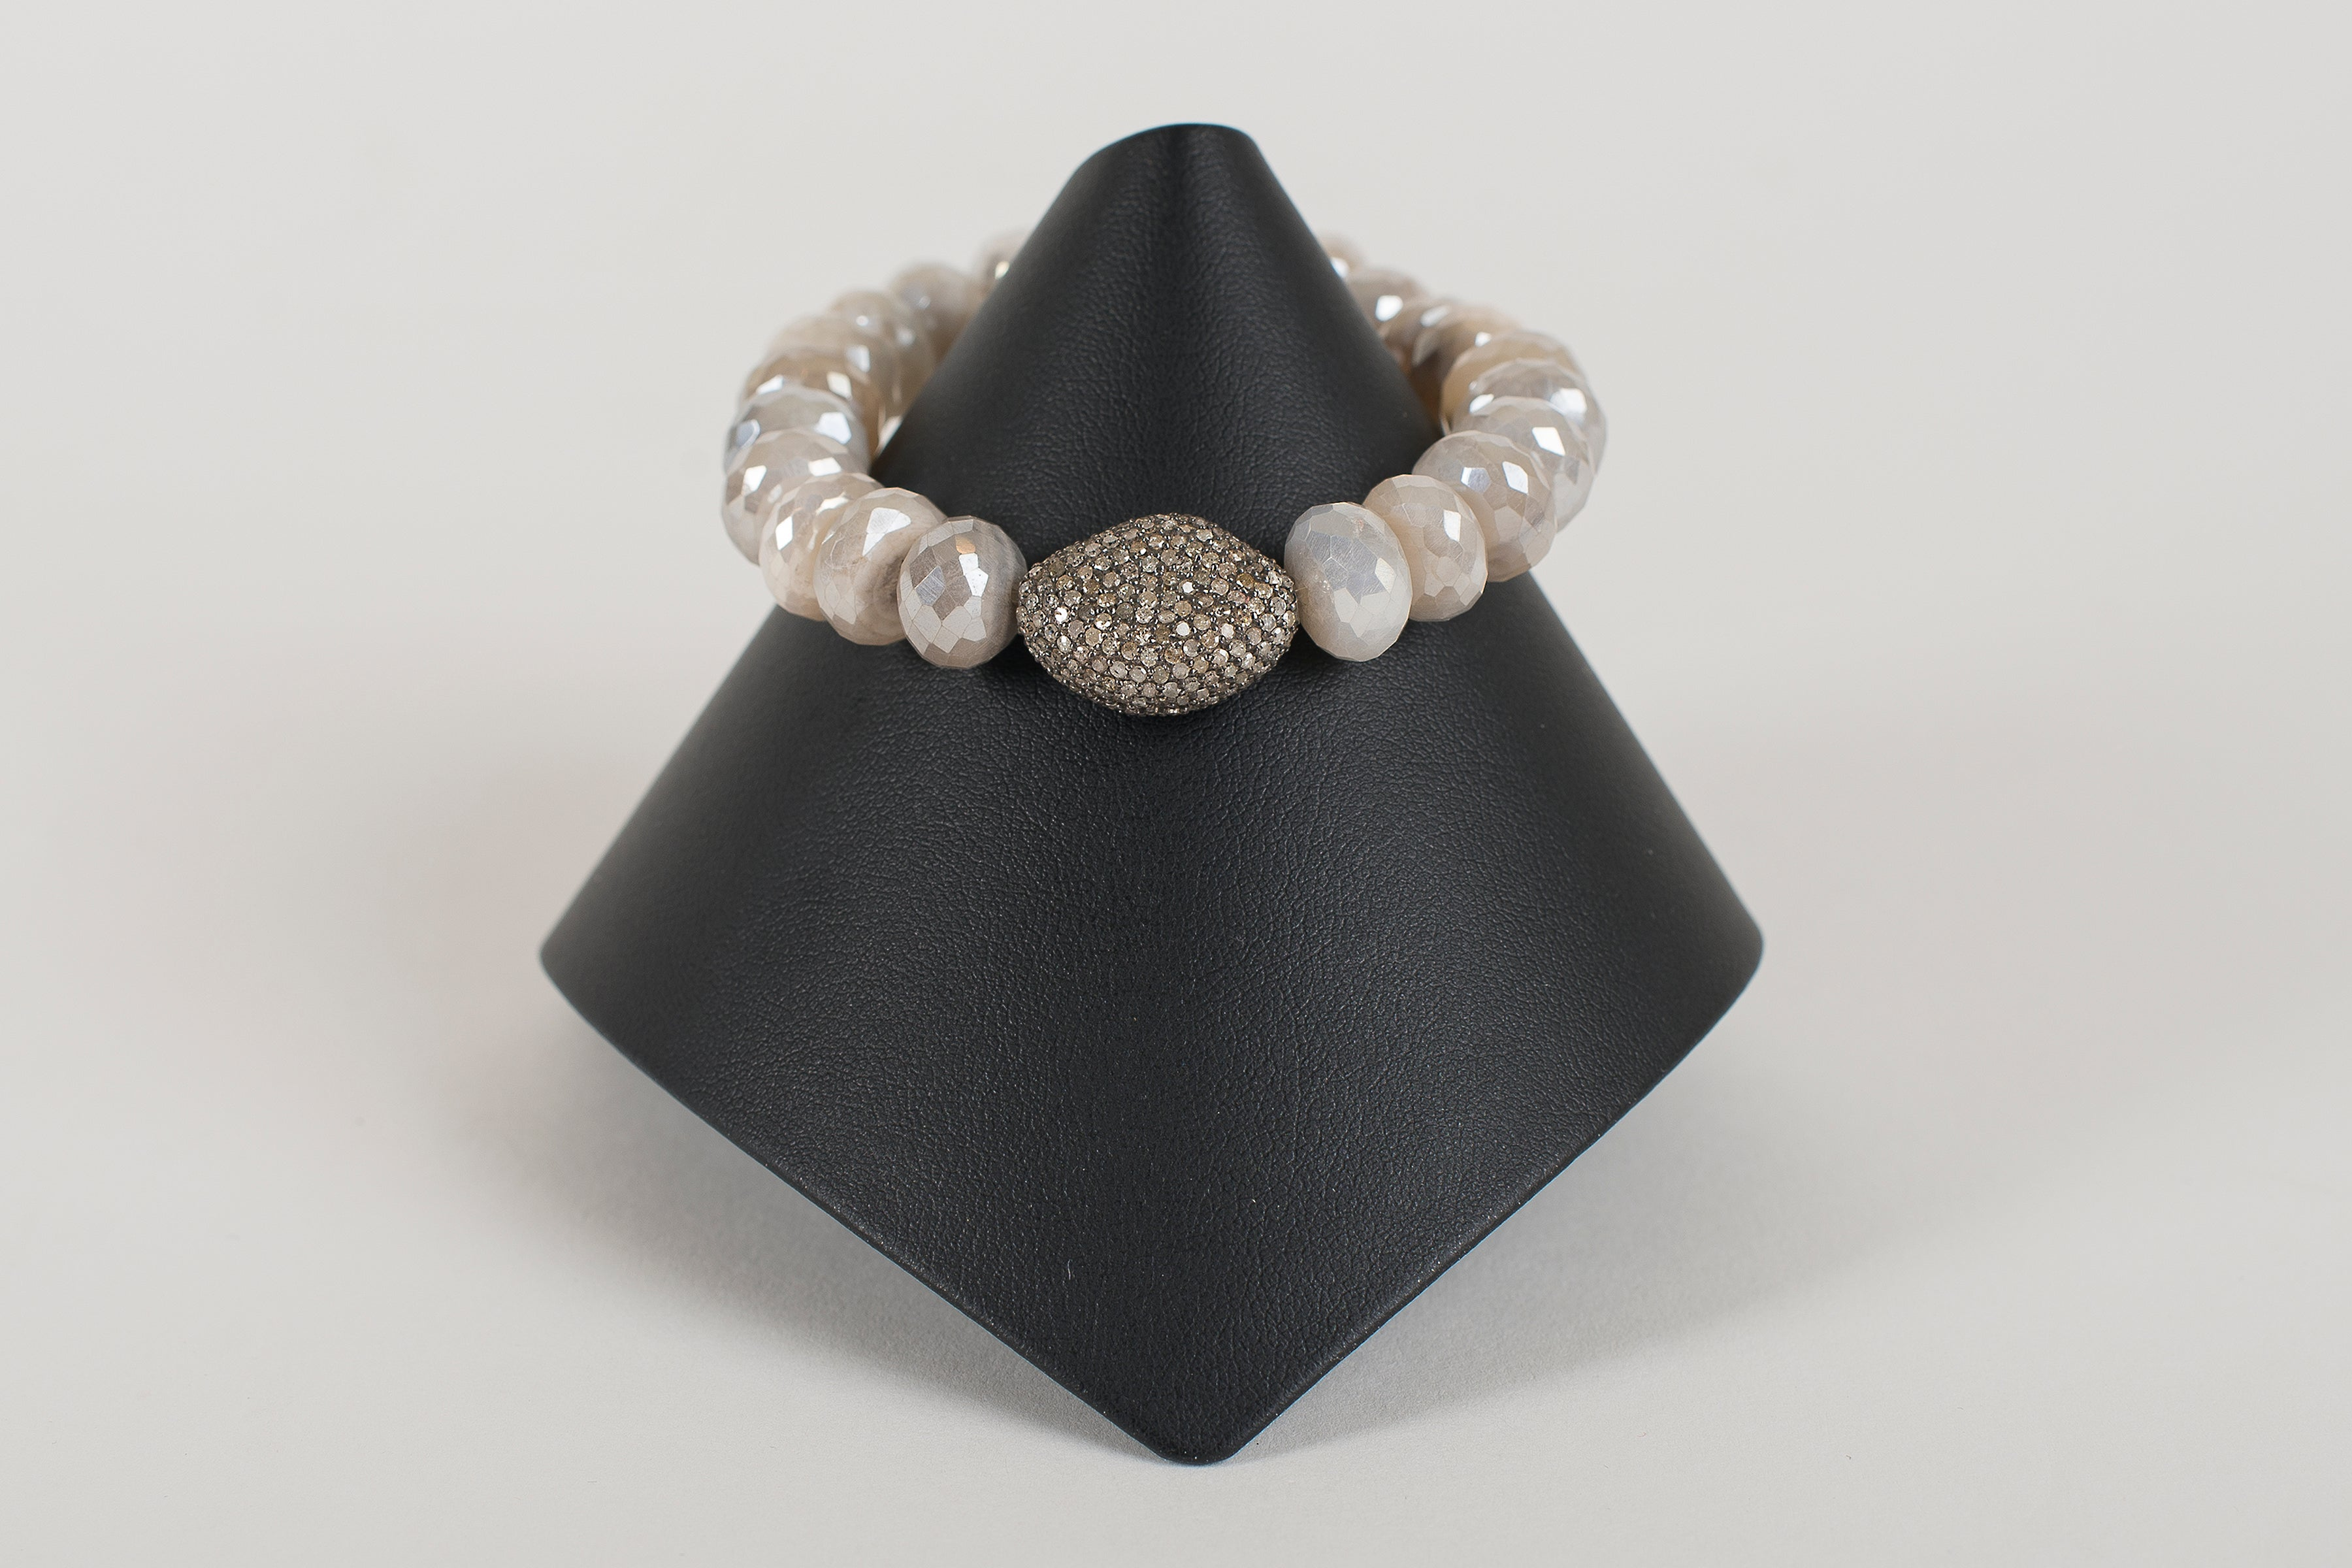 Faceted Mystic Moonstone Rondelle with Pave Diamond Bead